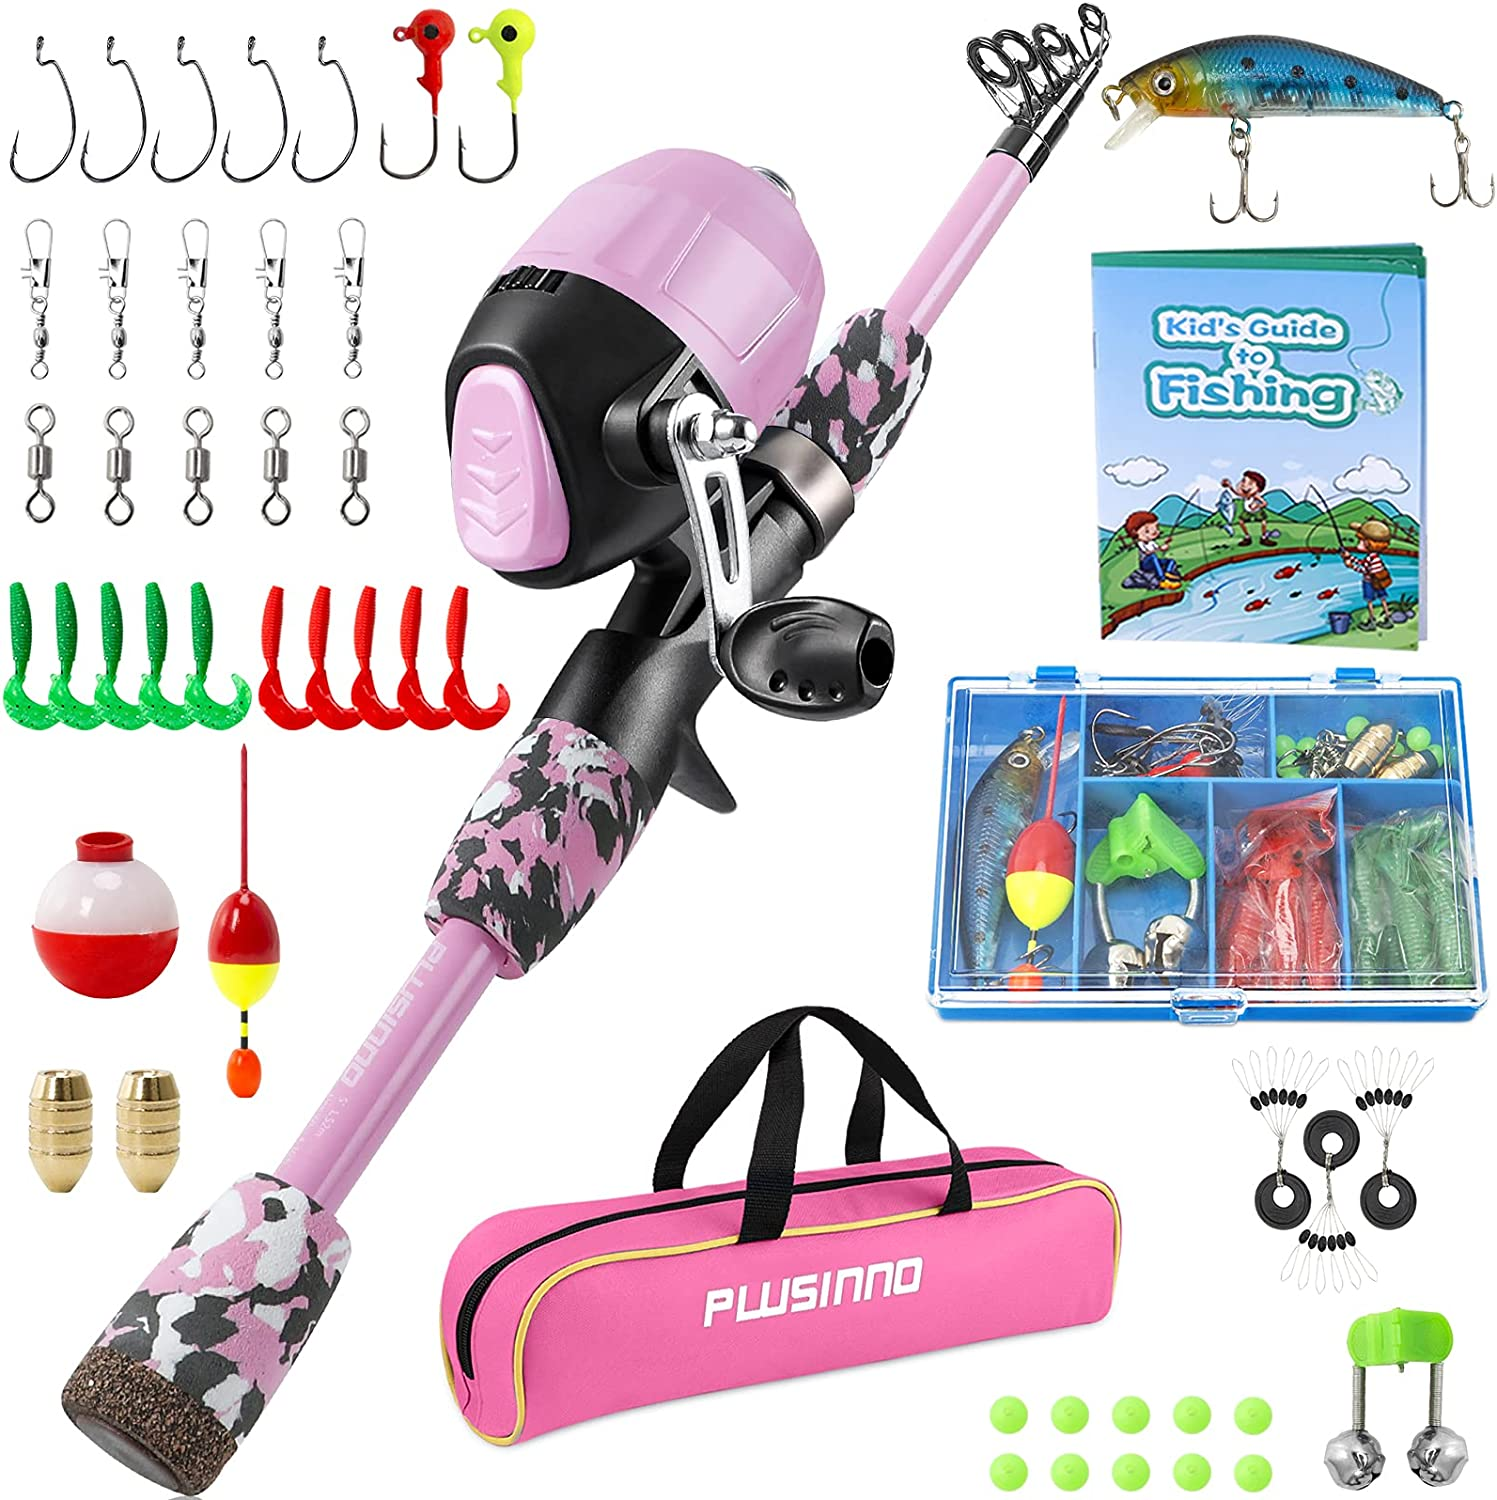 PLUSINNO Kids Fishing Arlington Mall Pole with Reel Selling and selling Spincast Telescopic